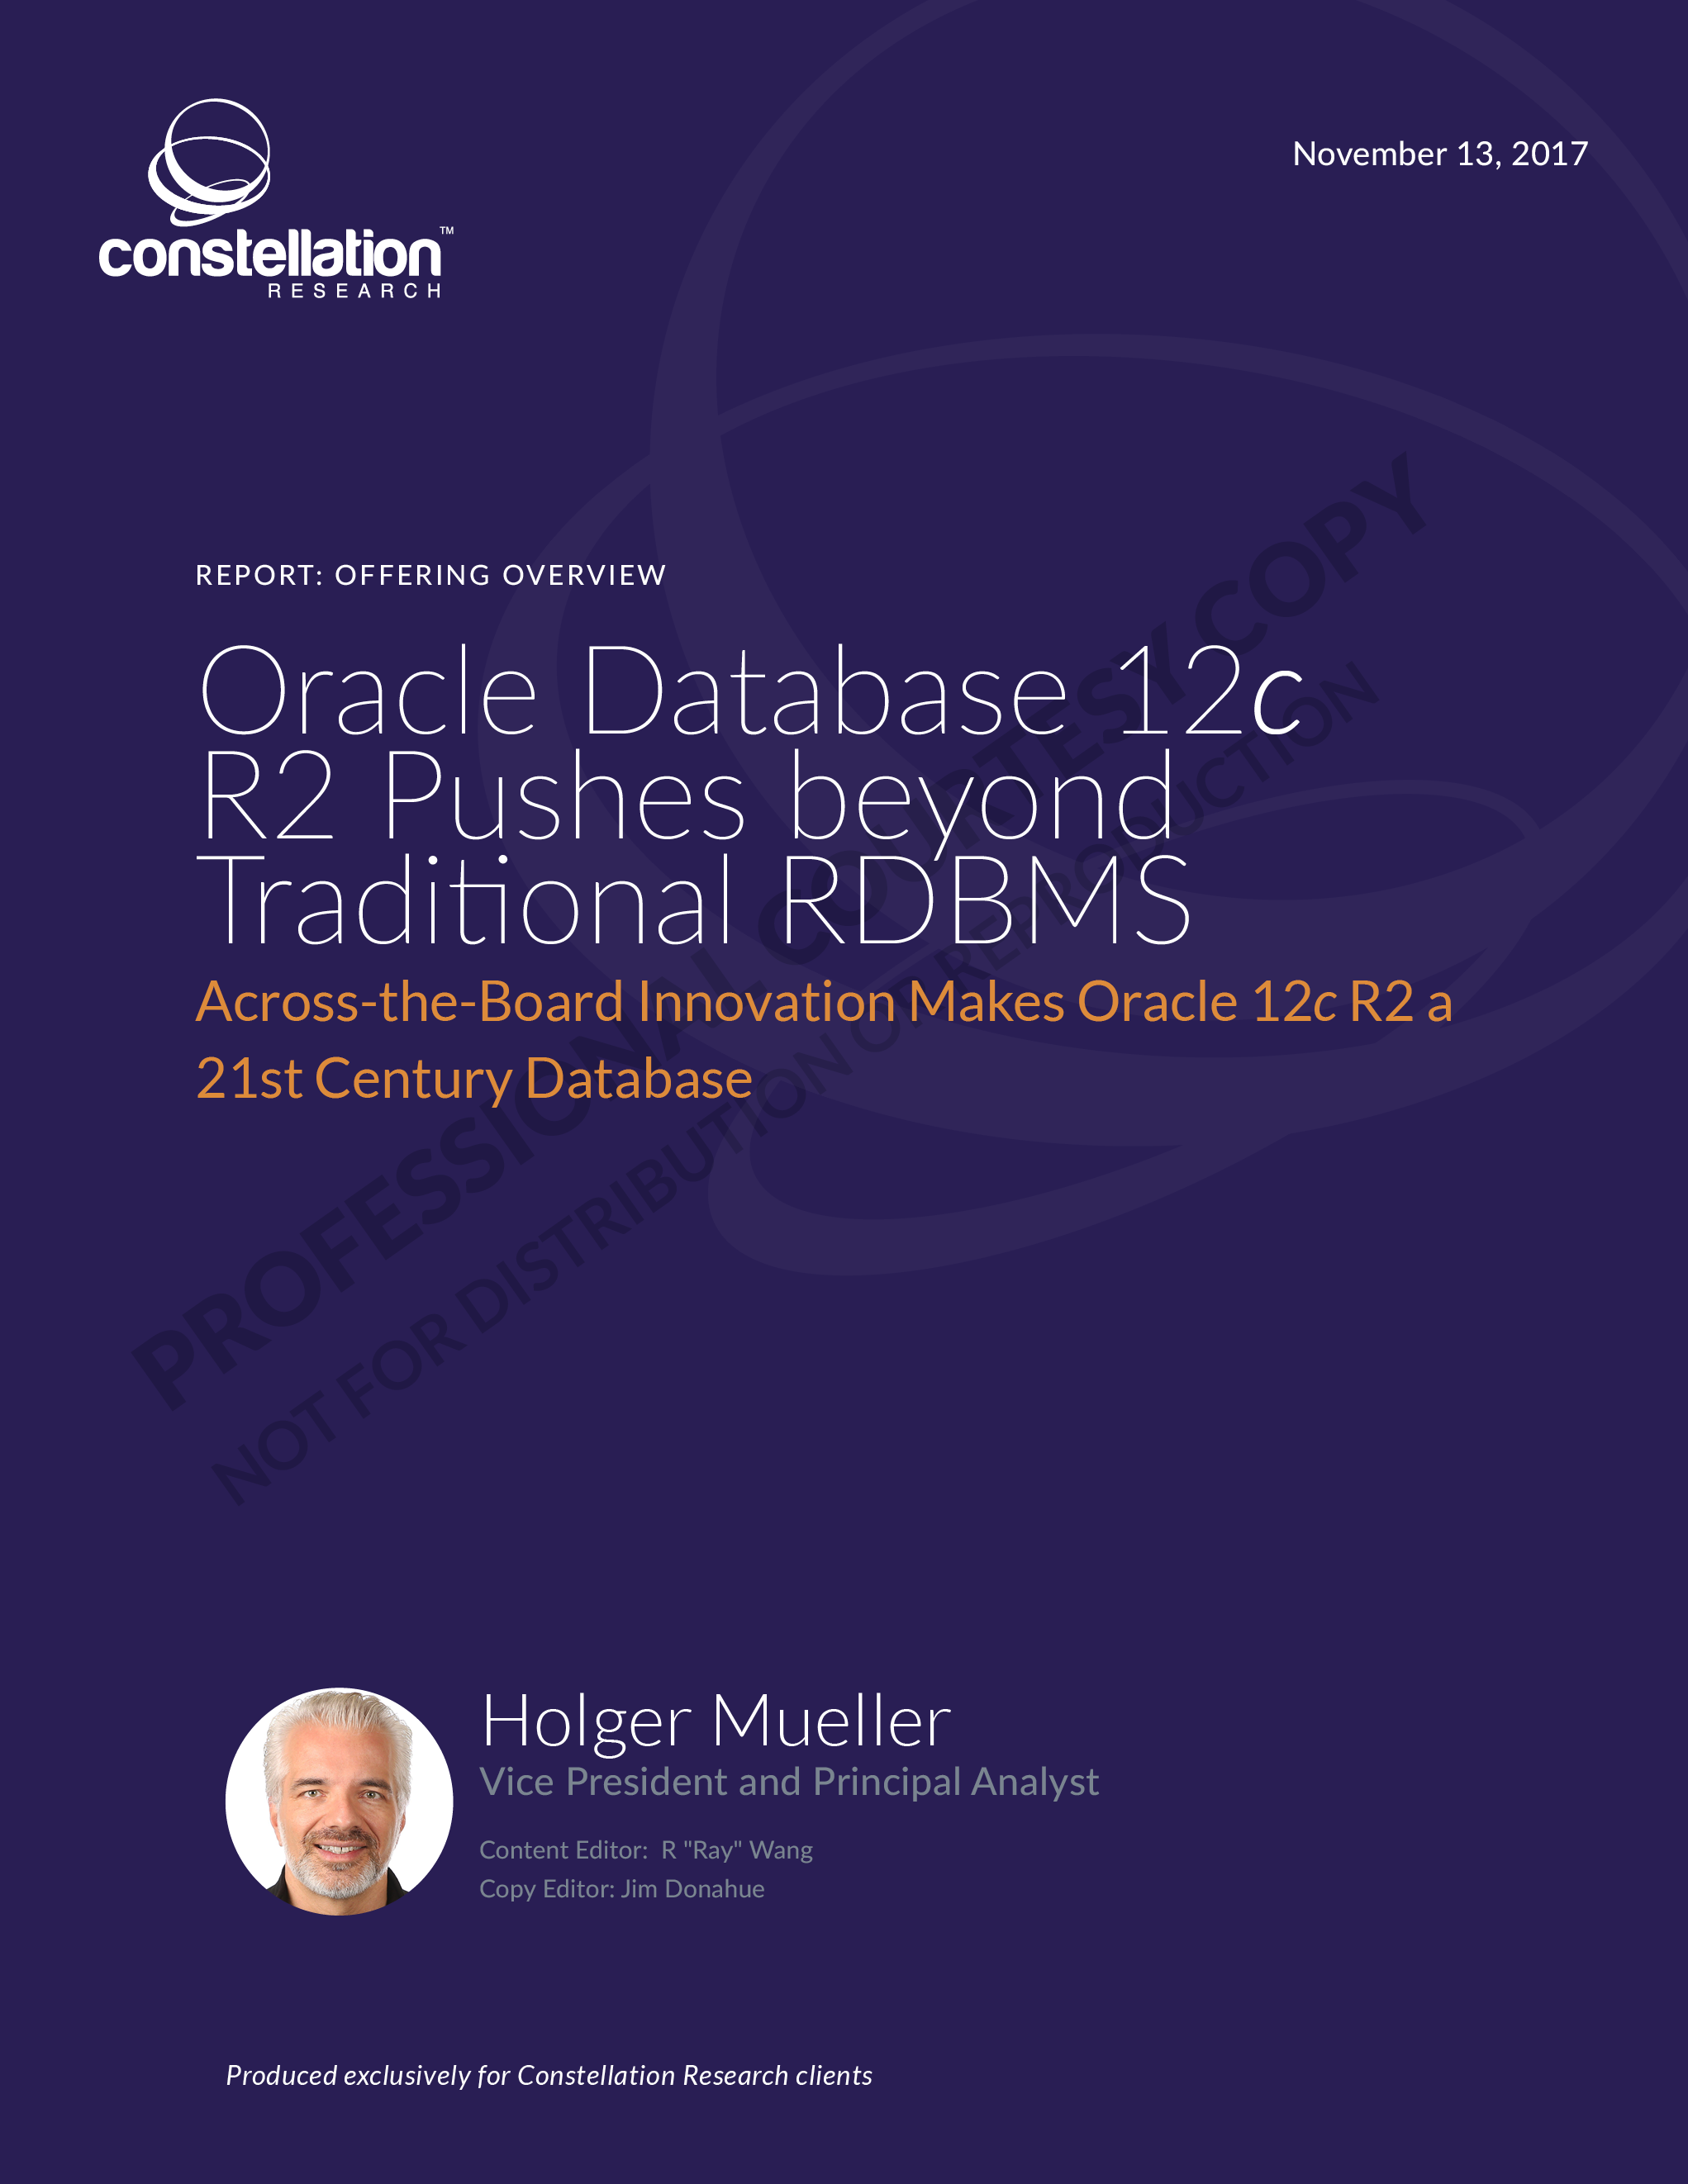 Oracle 12c R2 offering overview